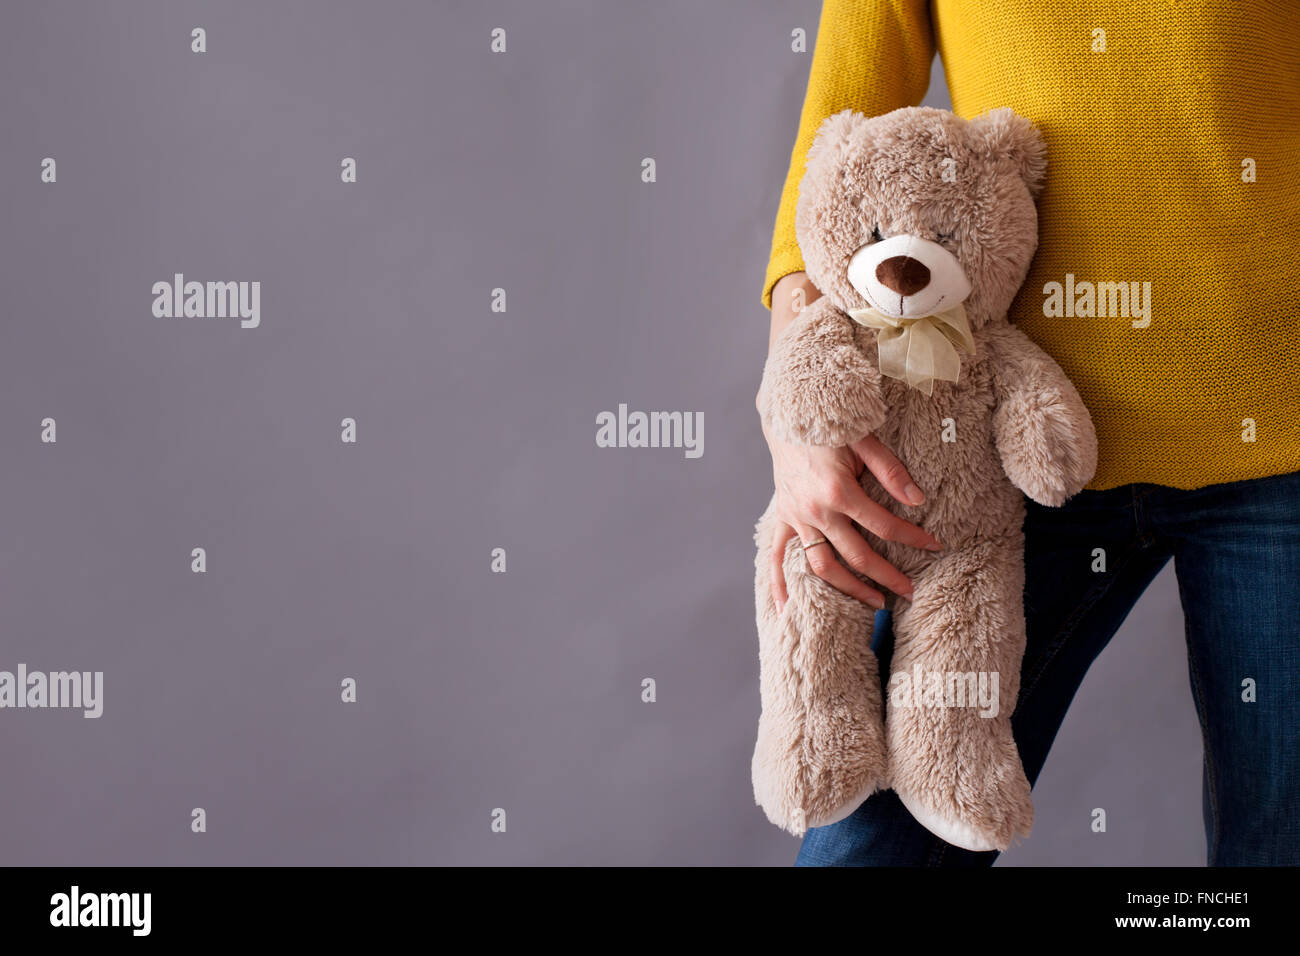 Young girl, holding sweet fluffy teddy bear, isolated image - Stock Image